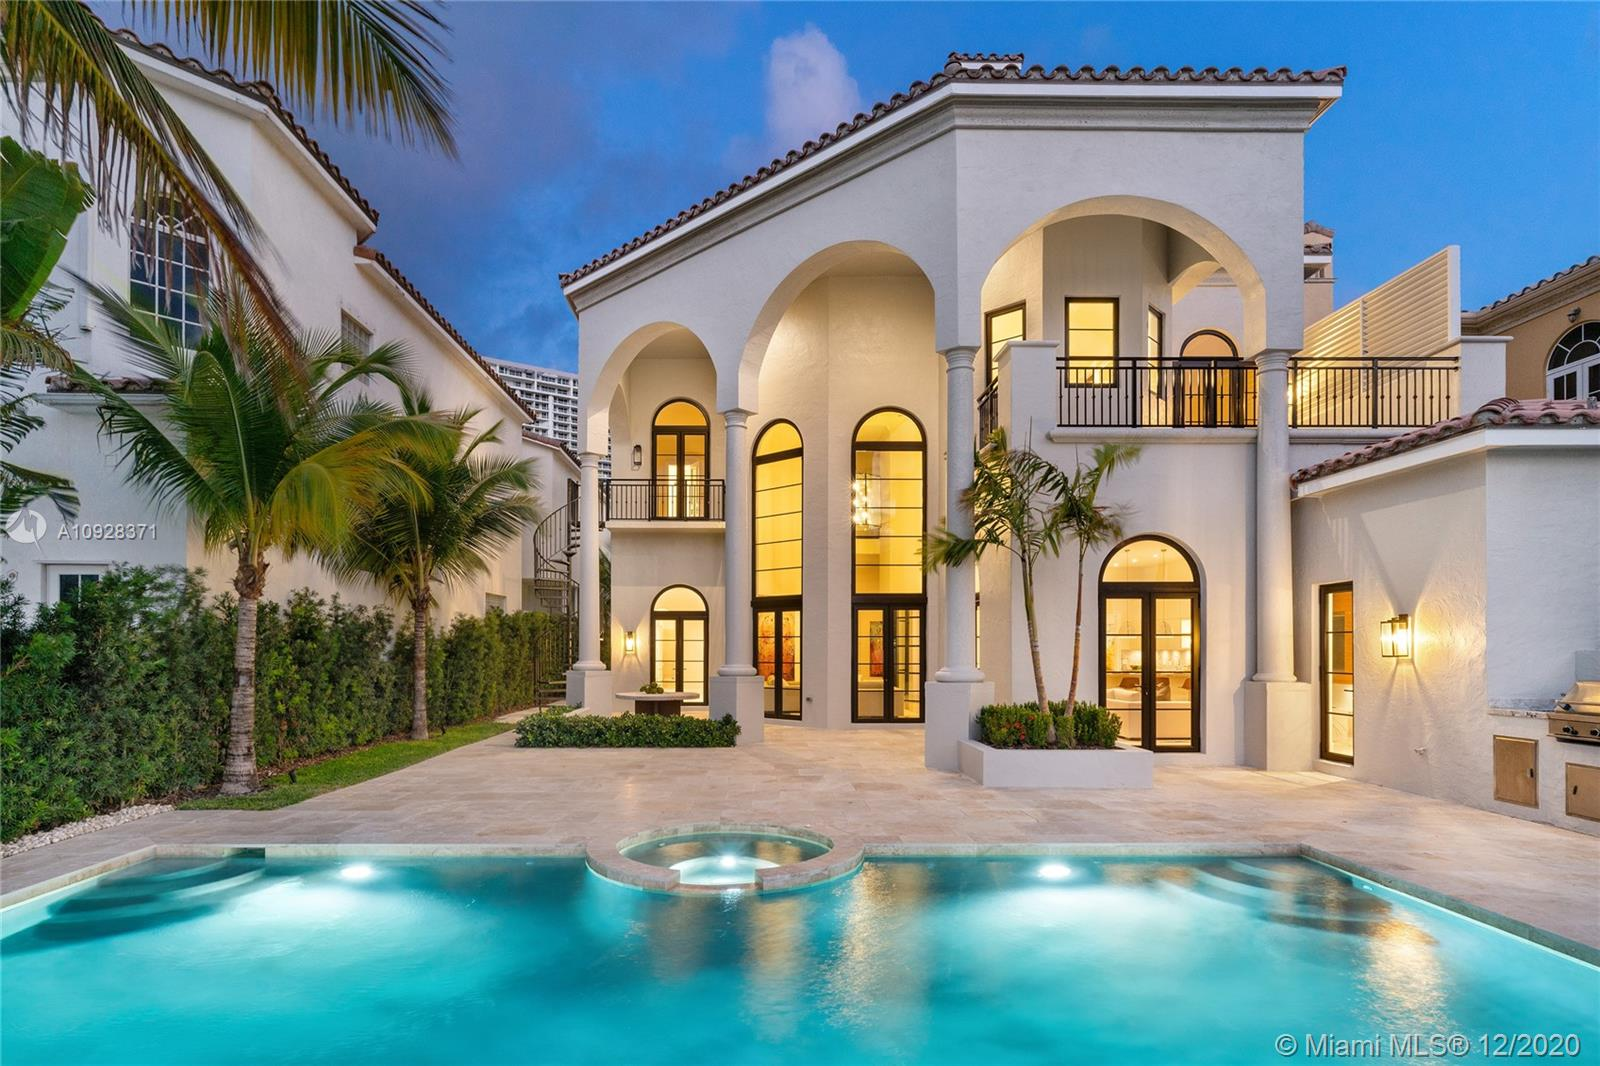 ISLAND ESTATES *** 100 FEET DOCK SPACE AVAILABLE *** HOME COMES WITH A 55' DOCK SPACE **** THIS IS THE ONLY HOME WITH WATER VIEWS IN THE FRONT AND BACK. EXCLUSIVE AND PRIVATE ISLAND ESTATES - A SOPHISTICATED AND LUXURIOUS RETREAT WITH ONLY 22 HOMES THAT REFLECTS MAGICAL MERGING OF INSPIRATION AND ARCHITECTURE. SPECTACULAR WATERFRONT MANSION! STUNNING INFINITY POOL AND BREATHTAKING VIEWS INTRACOASTAL. COMPLETELY REMODELED TO PERFECTION. SOARING 30 FOOT CEILINGS - GLEAMING TRAVERTINE & OAK FLOORS, FABULOUS ARCHED WINDOWS, ELEVATOR AND MORE. GENEROUSLY SIZED FORMAL DINING ROOM. FABULOUS GOURMET KITCHEN WILL INSPIRE YOUR INNER CHEF. AS A BONUS - HOMEOWNERS HAVE ACCESS TO ALL PRIVE AMENITIES AT NO ADDITIONAL COST! PRIVATE ROAMING PATROL GUARD 24/7.  ONE OF A KIND HOME!